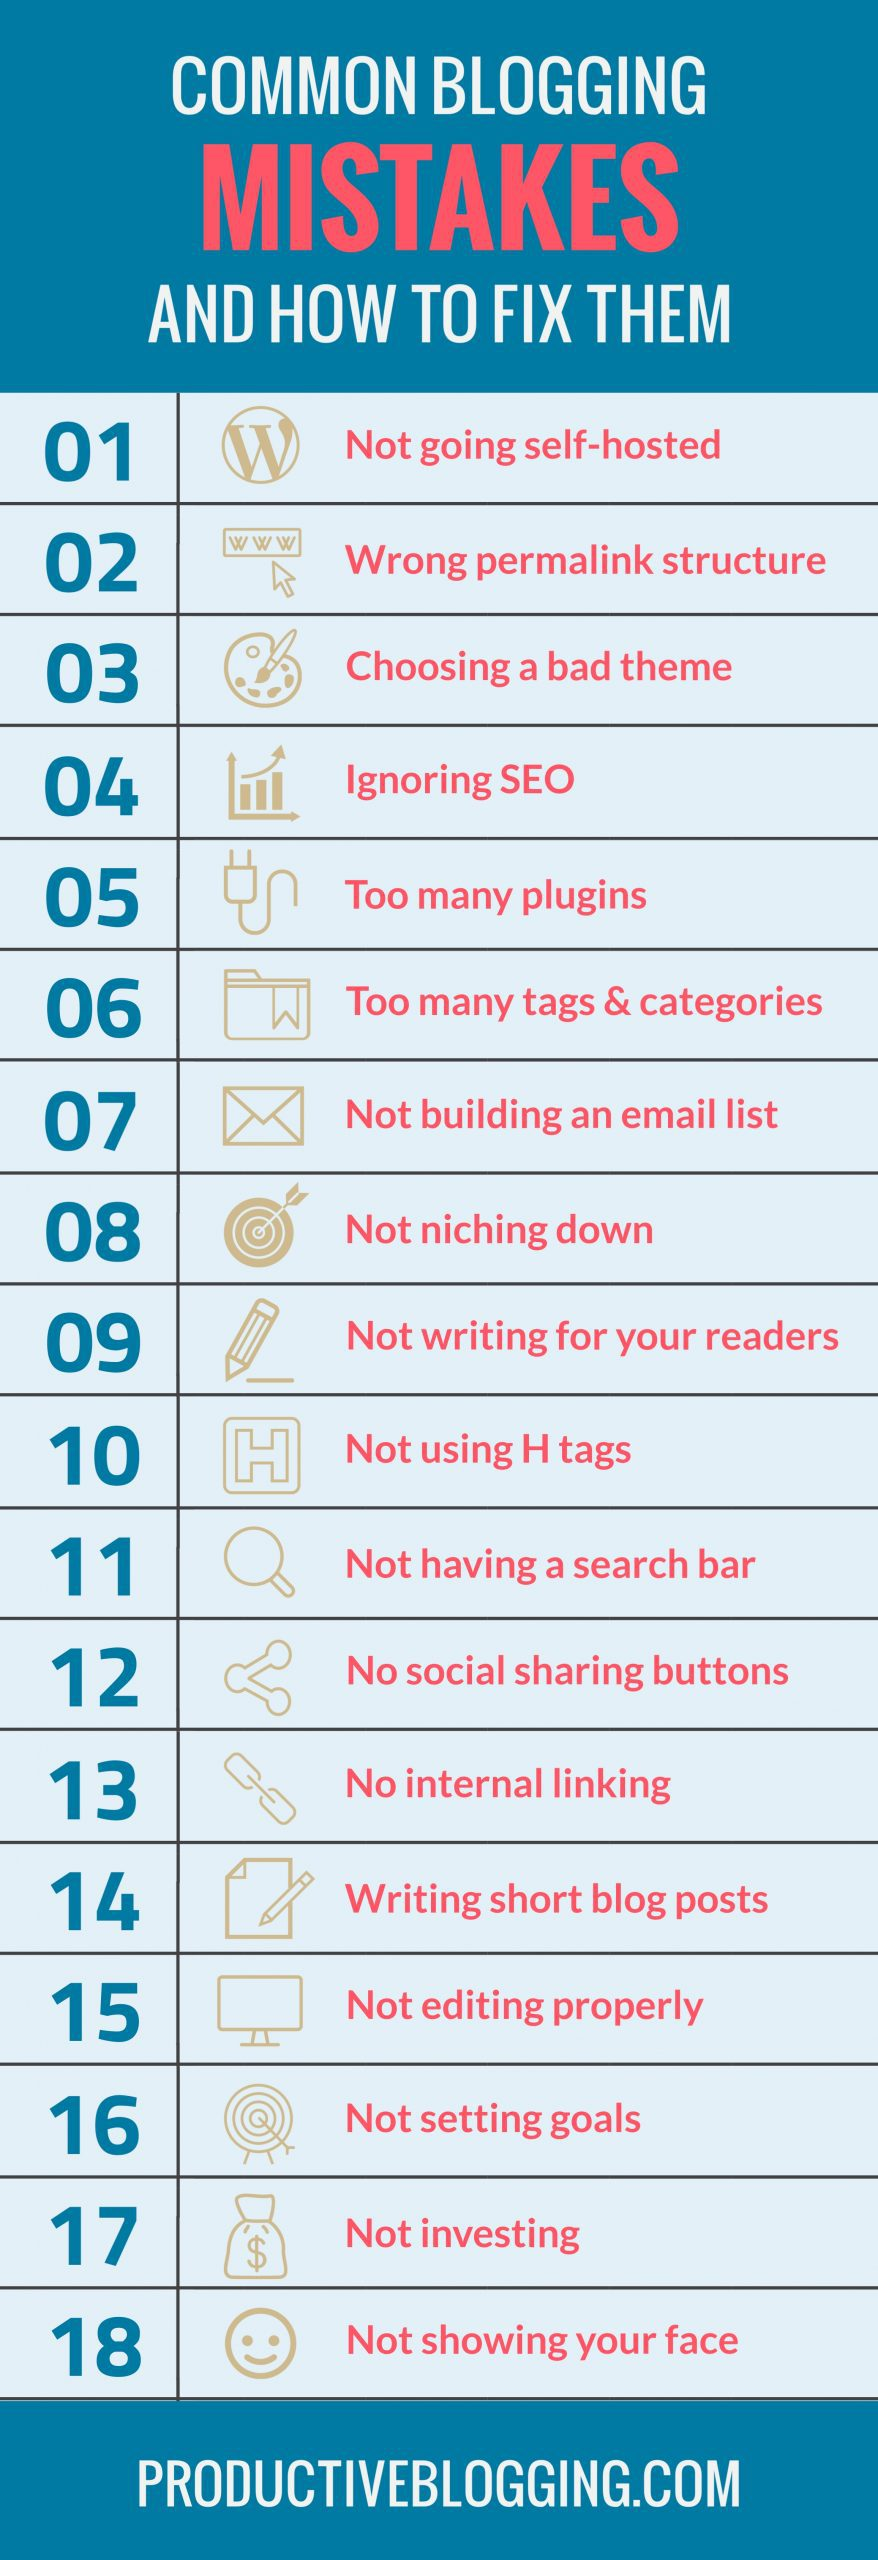 Want your blog to be a success? Make sure you are not making any of these common blogging mistakes! #bloggingmistakes #newblogger #newbloggers #newbloggermistakes #startablog #startaprofitableblog #profitableblogging #bloggingtips #blogginghacks #blogging #bloggers #blog #blogtips #beginnerblogger #newblog #newblogmistakes #productiveblogging #productivebloggingcommunity